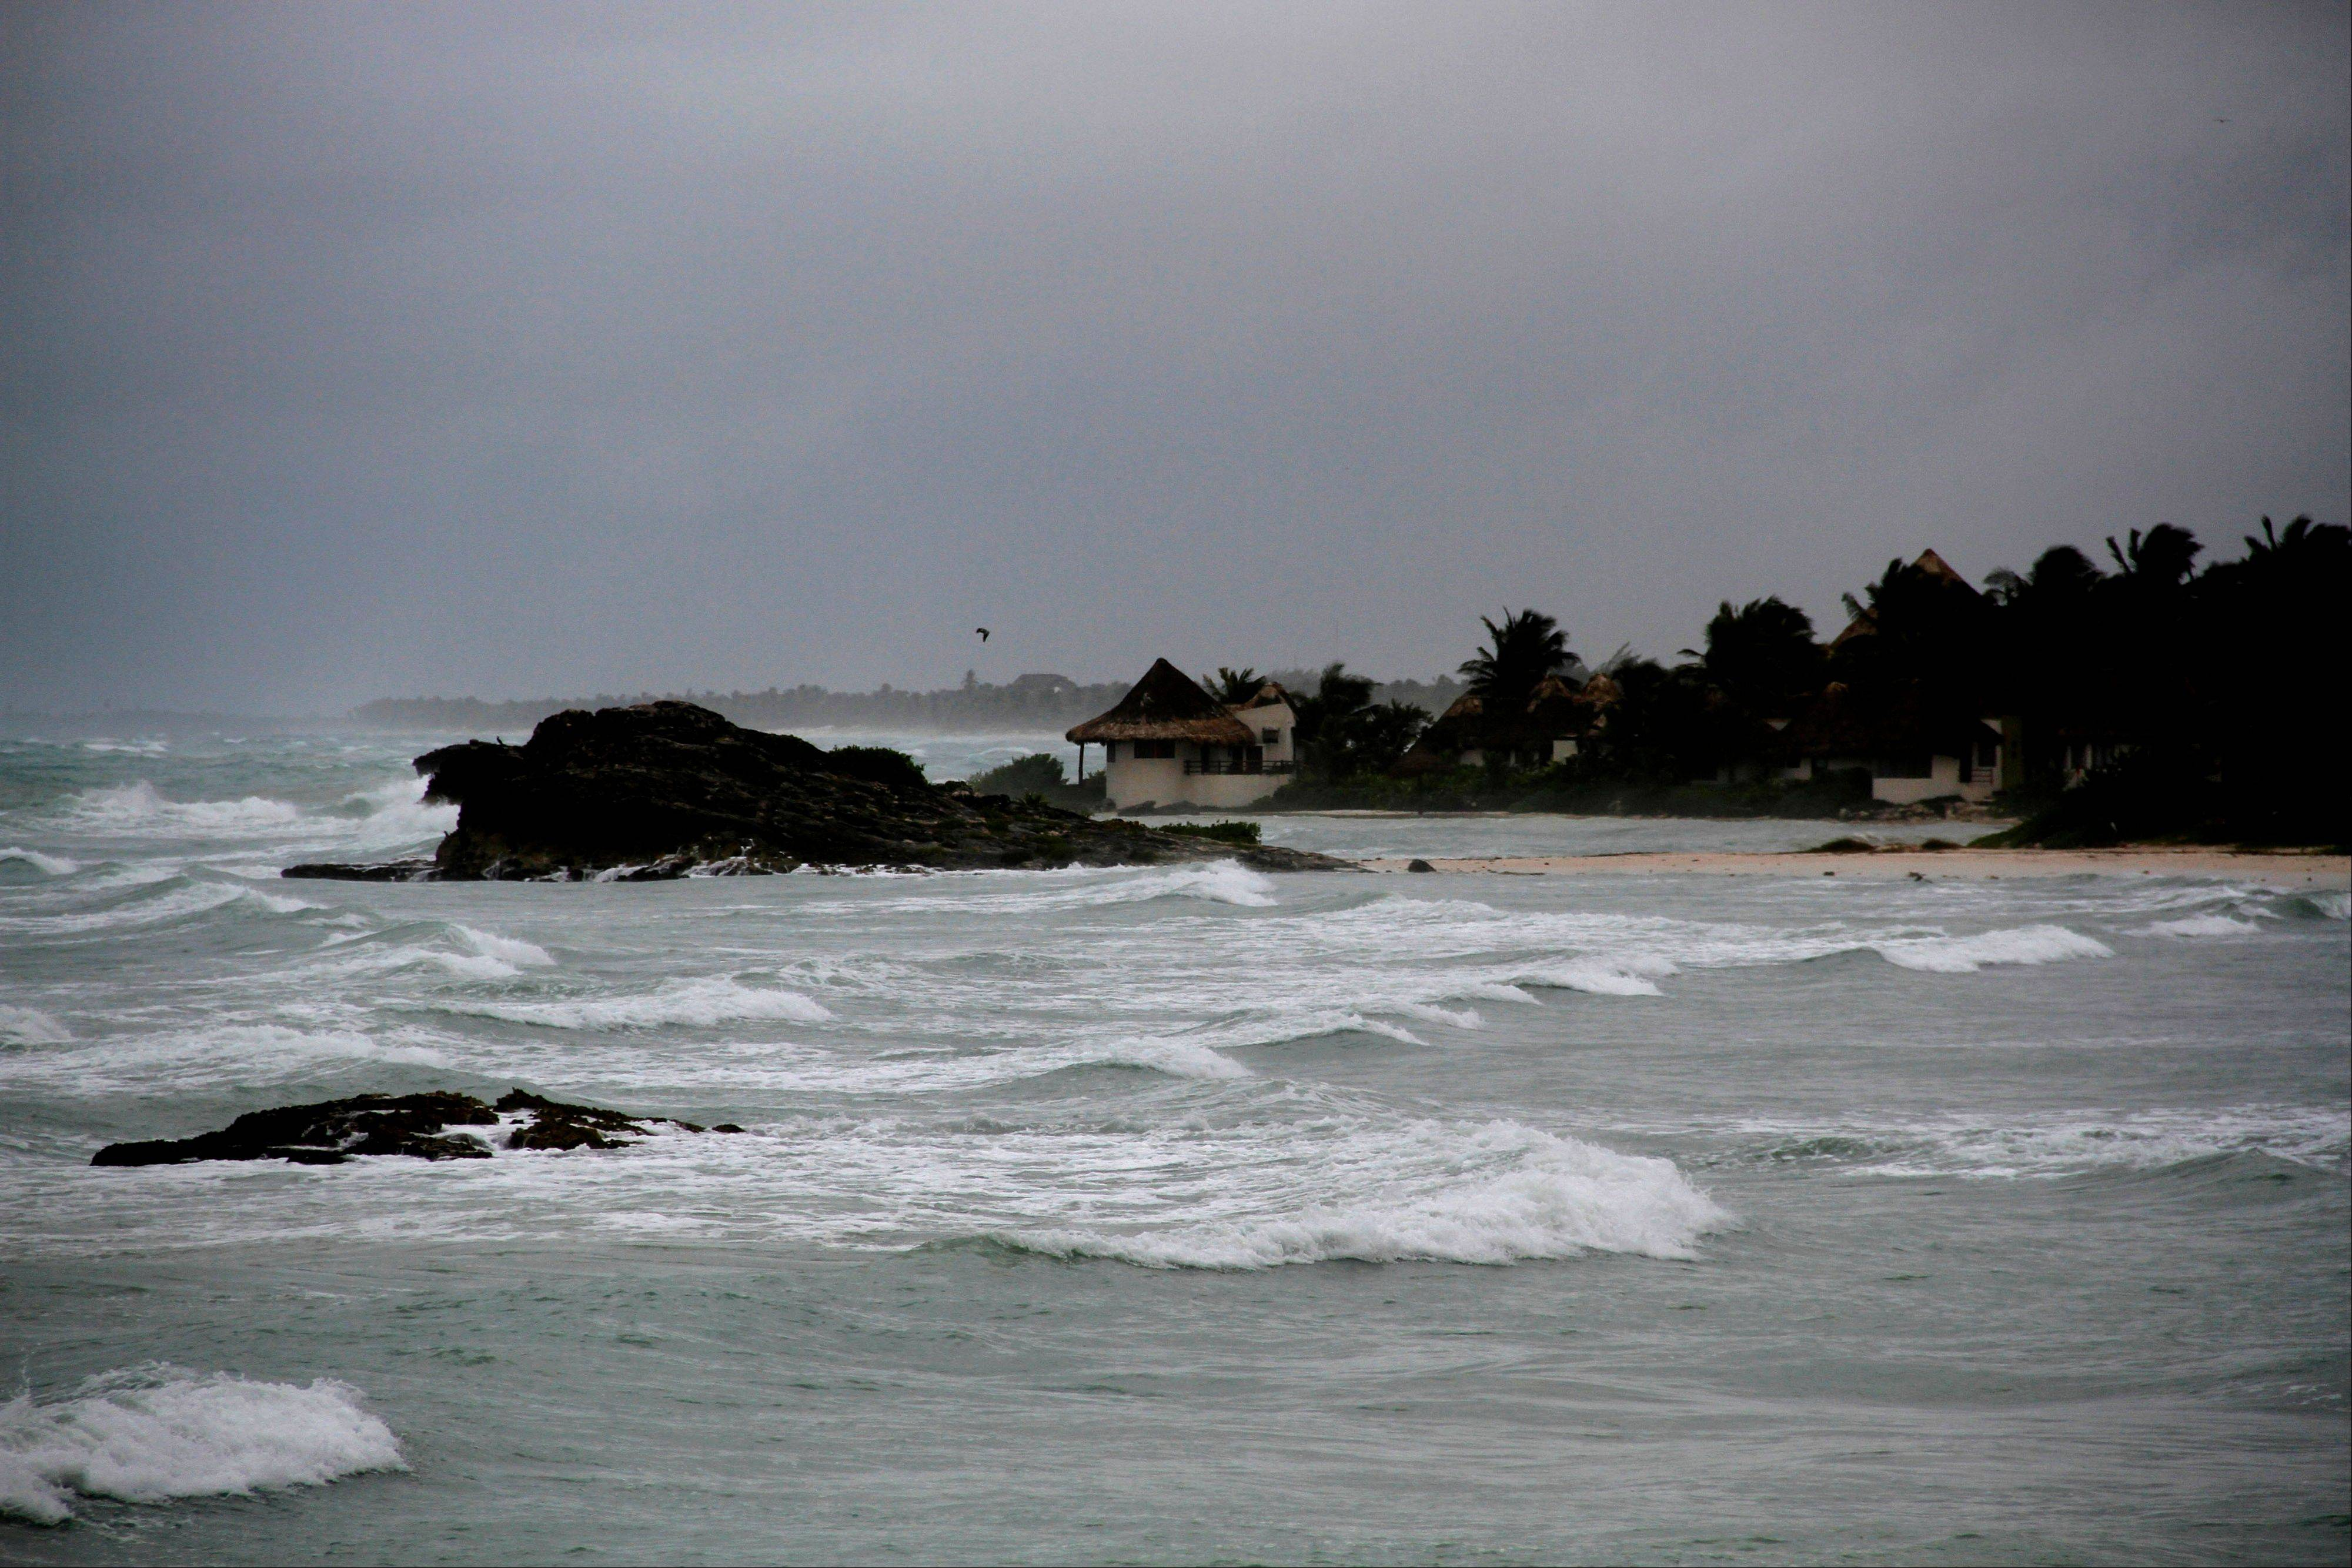 View of the beach in Tulum, Mexico, Tuesday, as Tropical Storm Ernesto brings the threat of hurricane-force winds and torrential rains to the Caribbean coast. The heart of the storm was expected to hit south of Cancun and the Riviera Maya.